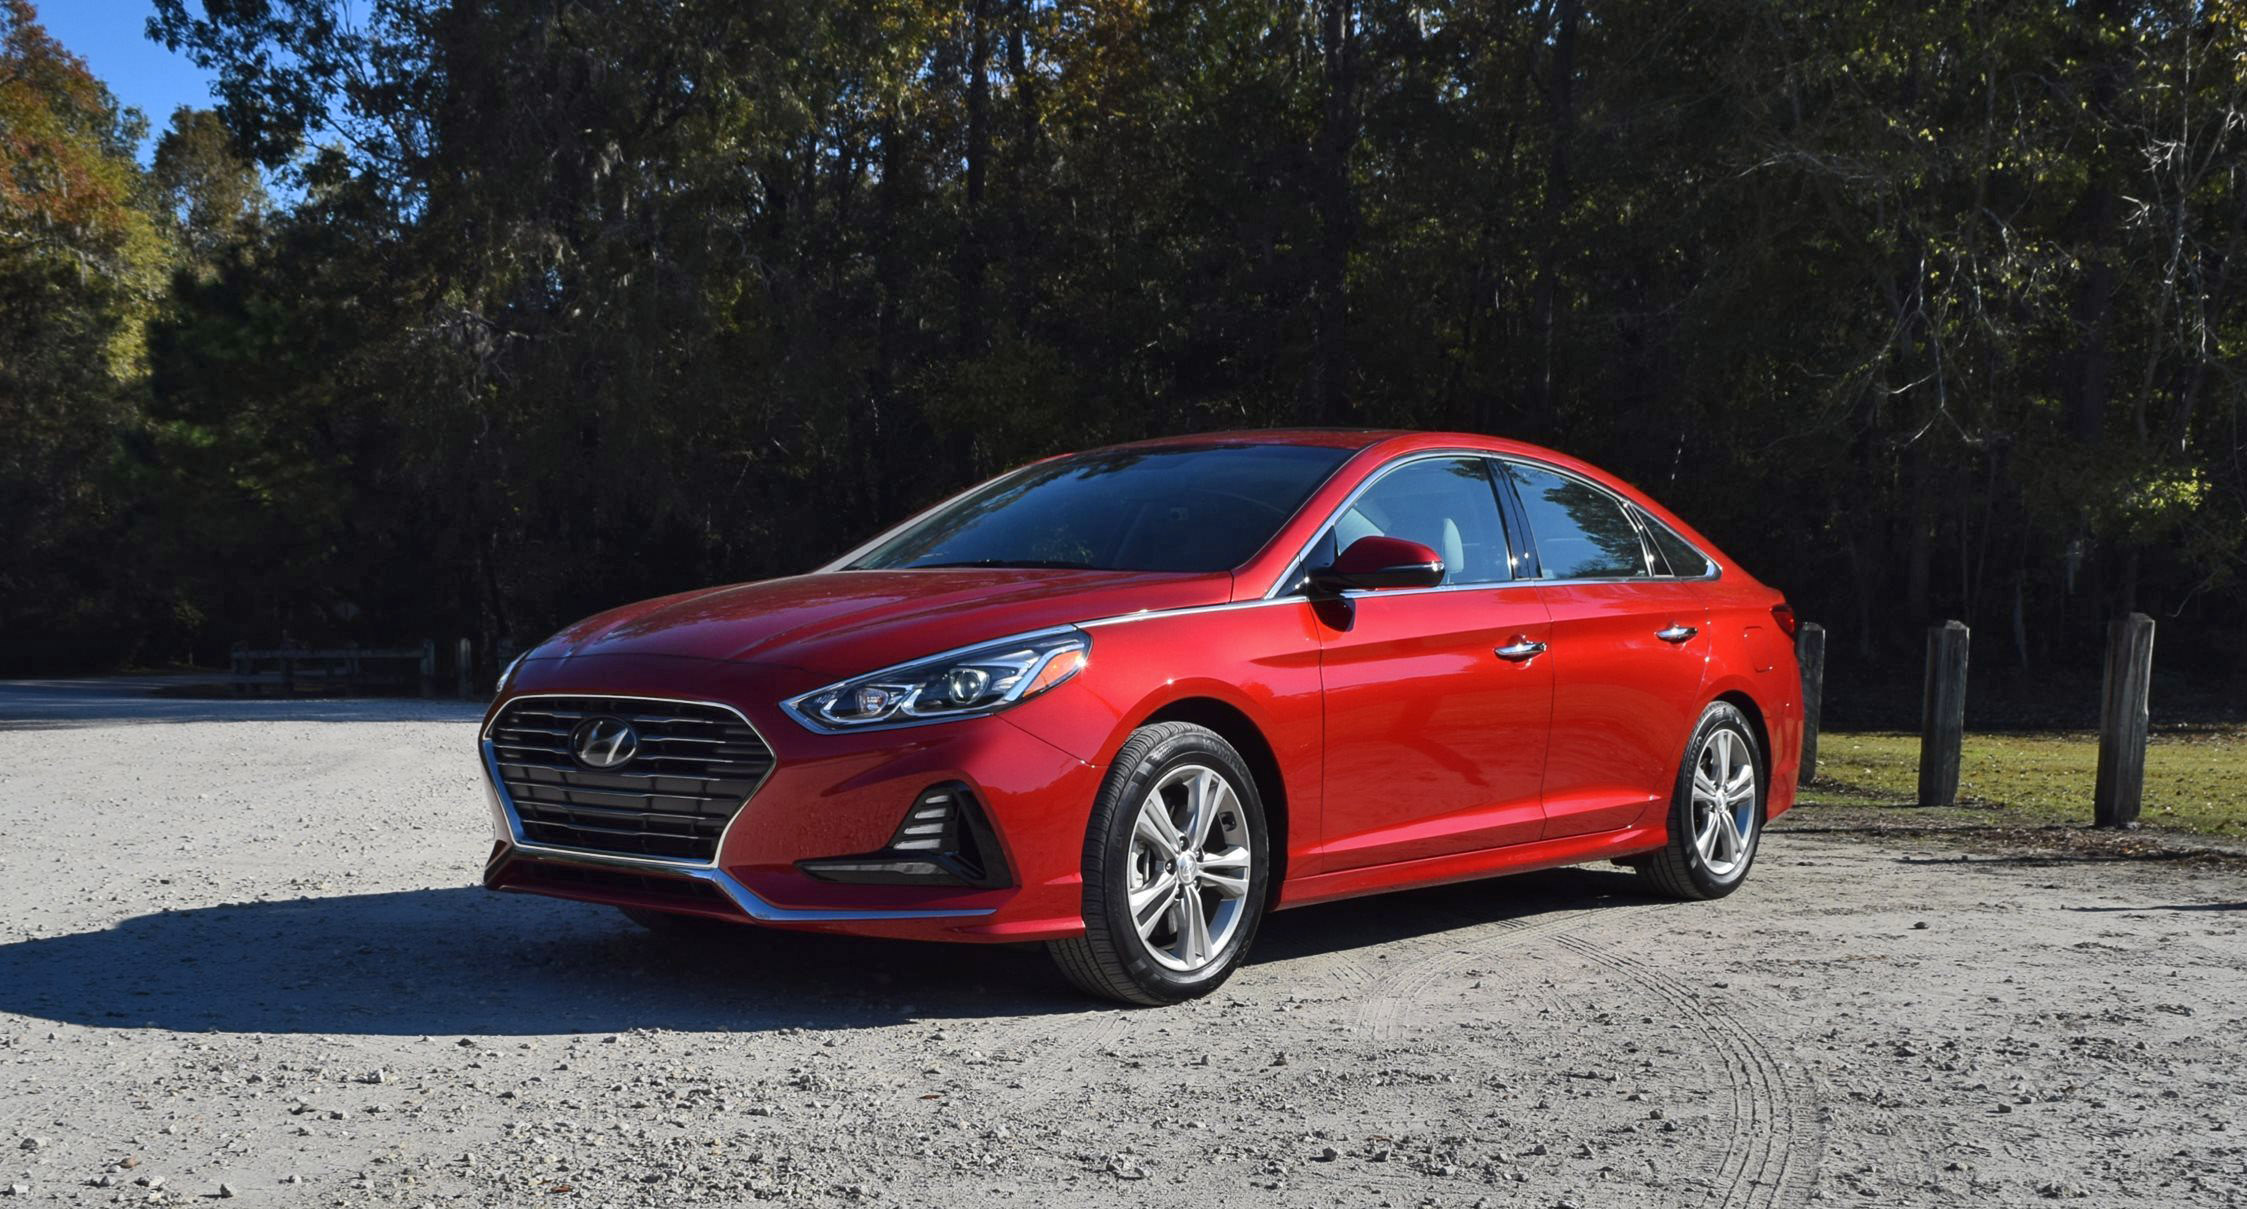 2018 hyundai sonata 2 4l limited road test review. Black Bedroom Furniture Sets. Home Design Ideas